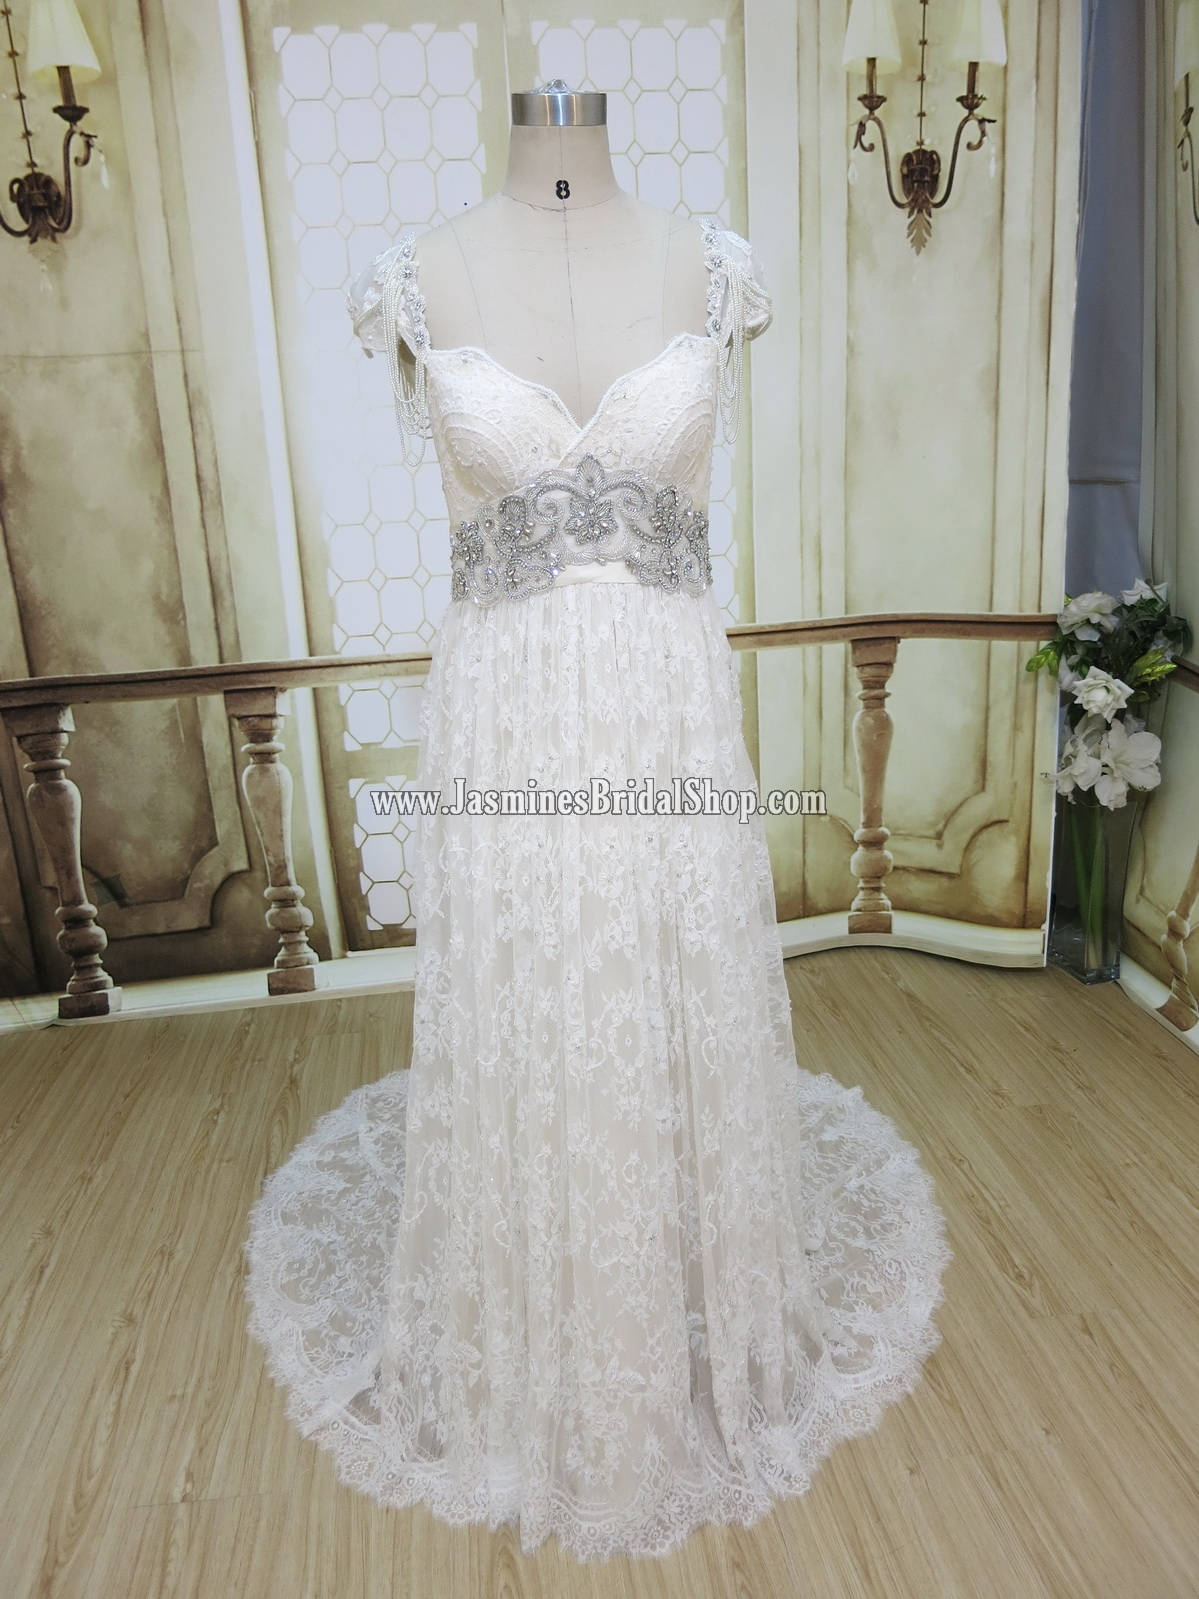 Order #3457: This delicate dress was made in Light Champagne color (#70) with lace in Off White (#69) and silver beading. Also, as opposed to the original design, customer brilliantly substituted the shoulder beading with pearls.